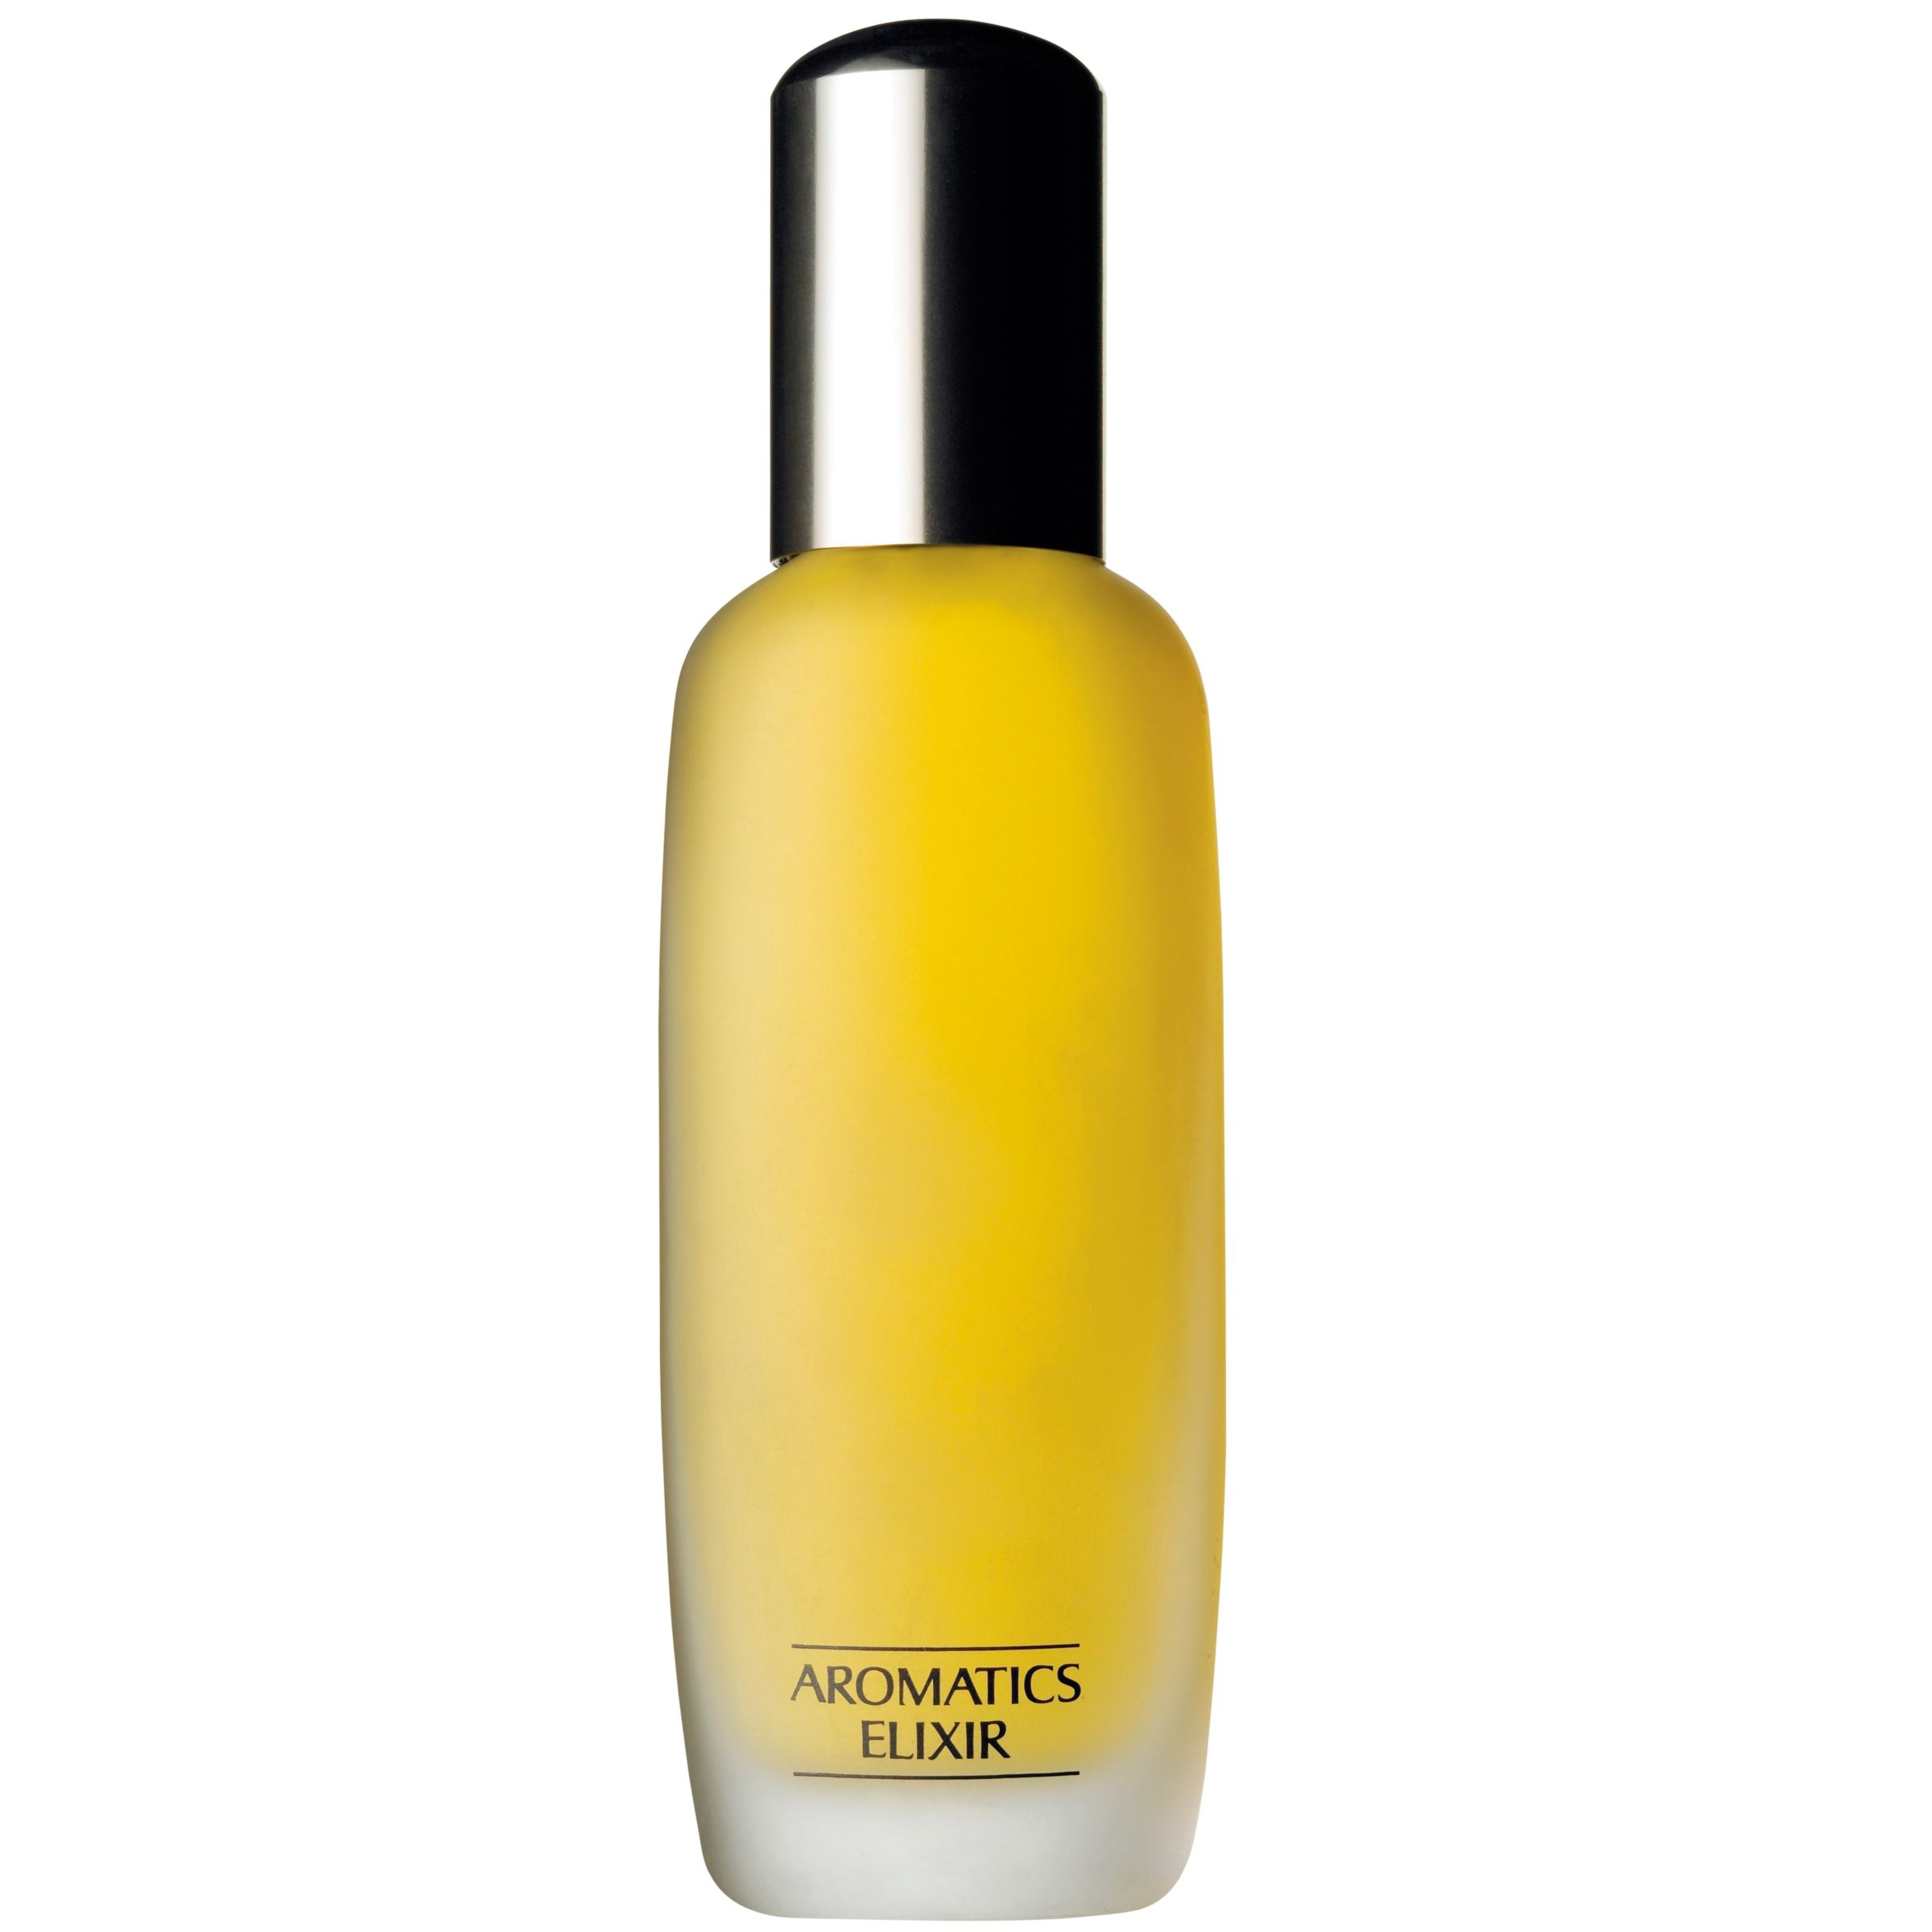 Clinique Aromatics Elixir Perfume Spray at John Lewis & Partners